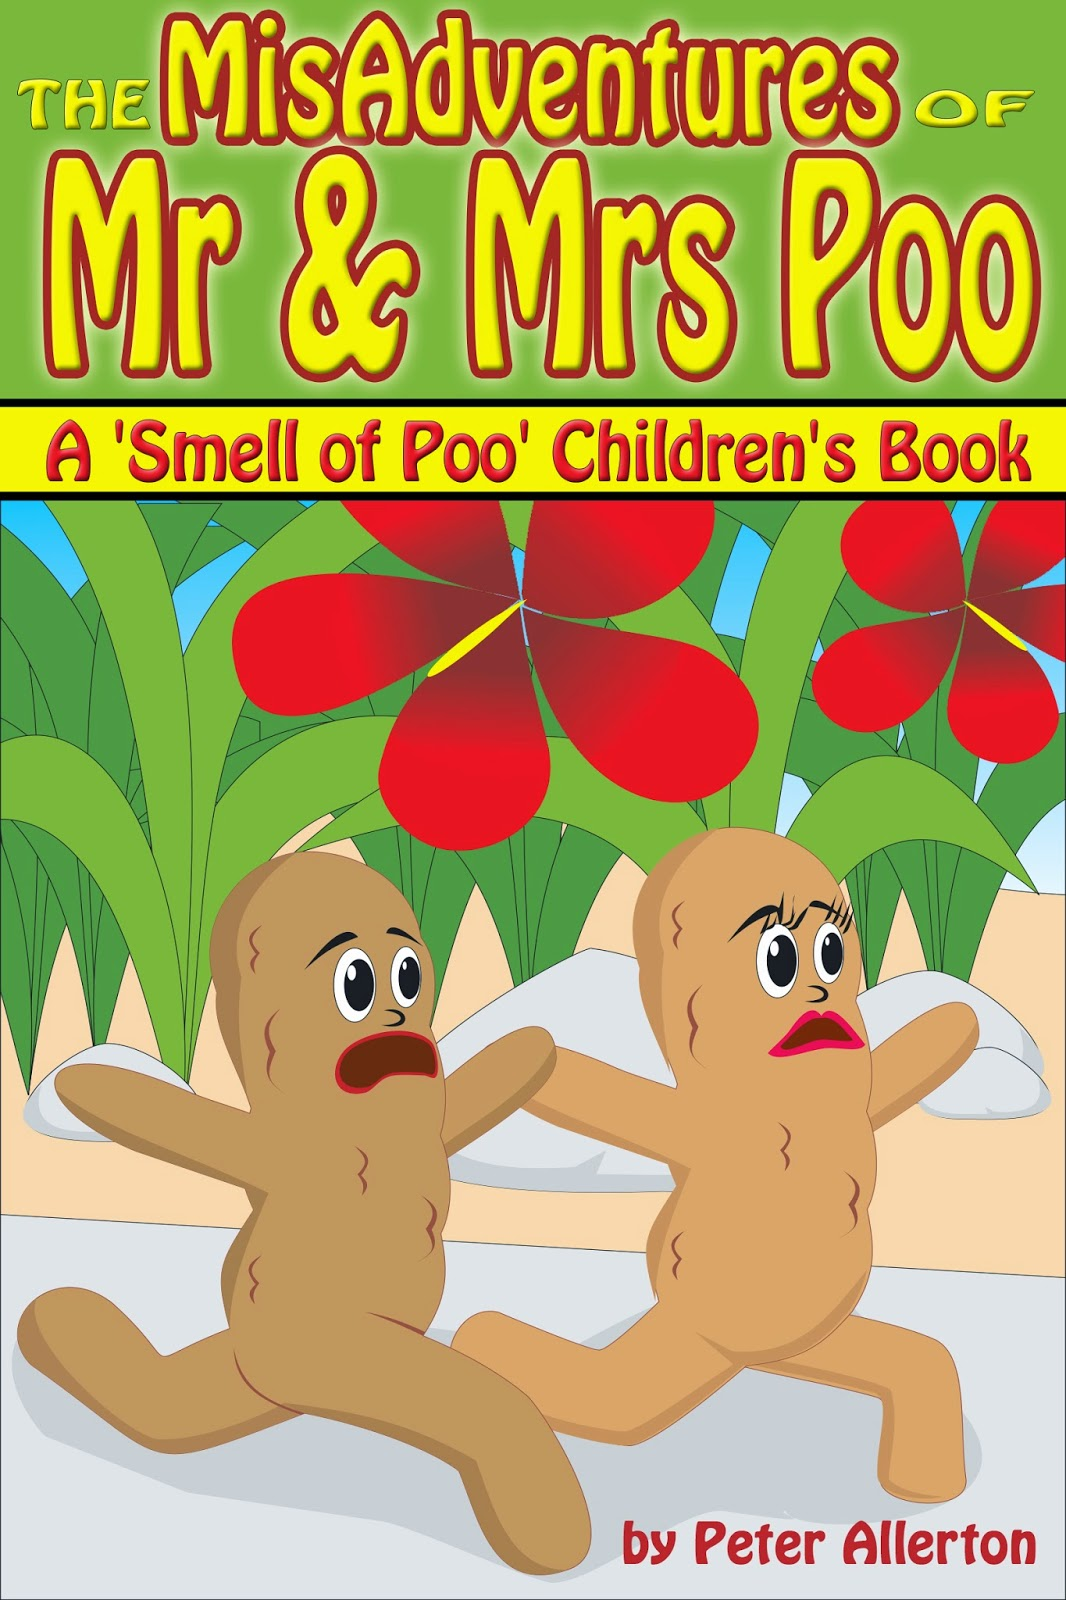 funny children's adventure story book